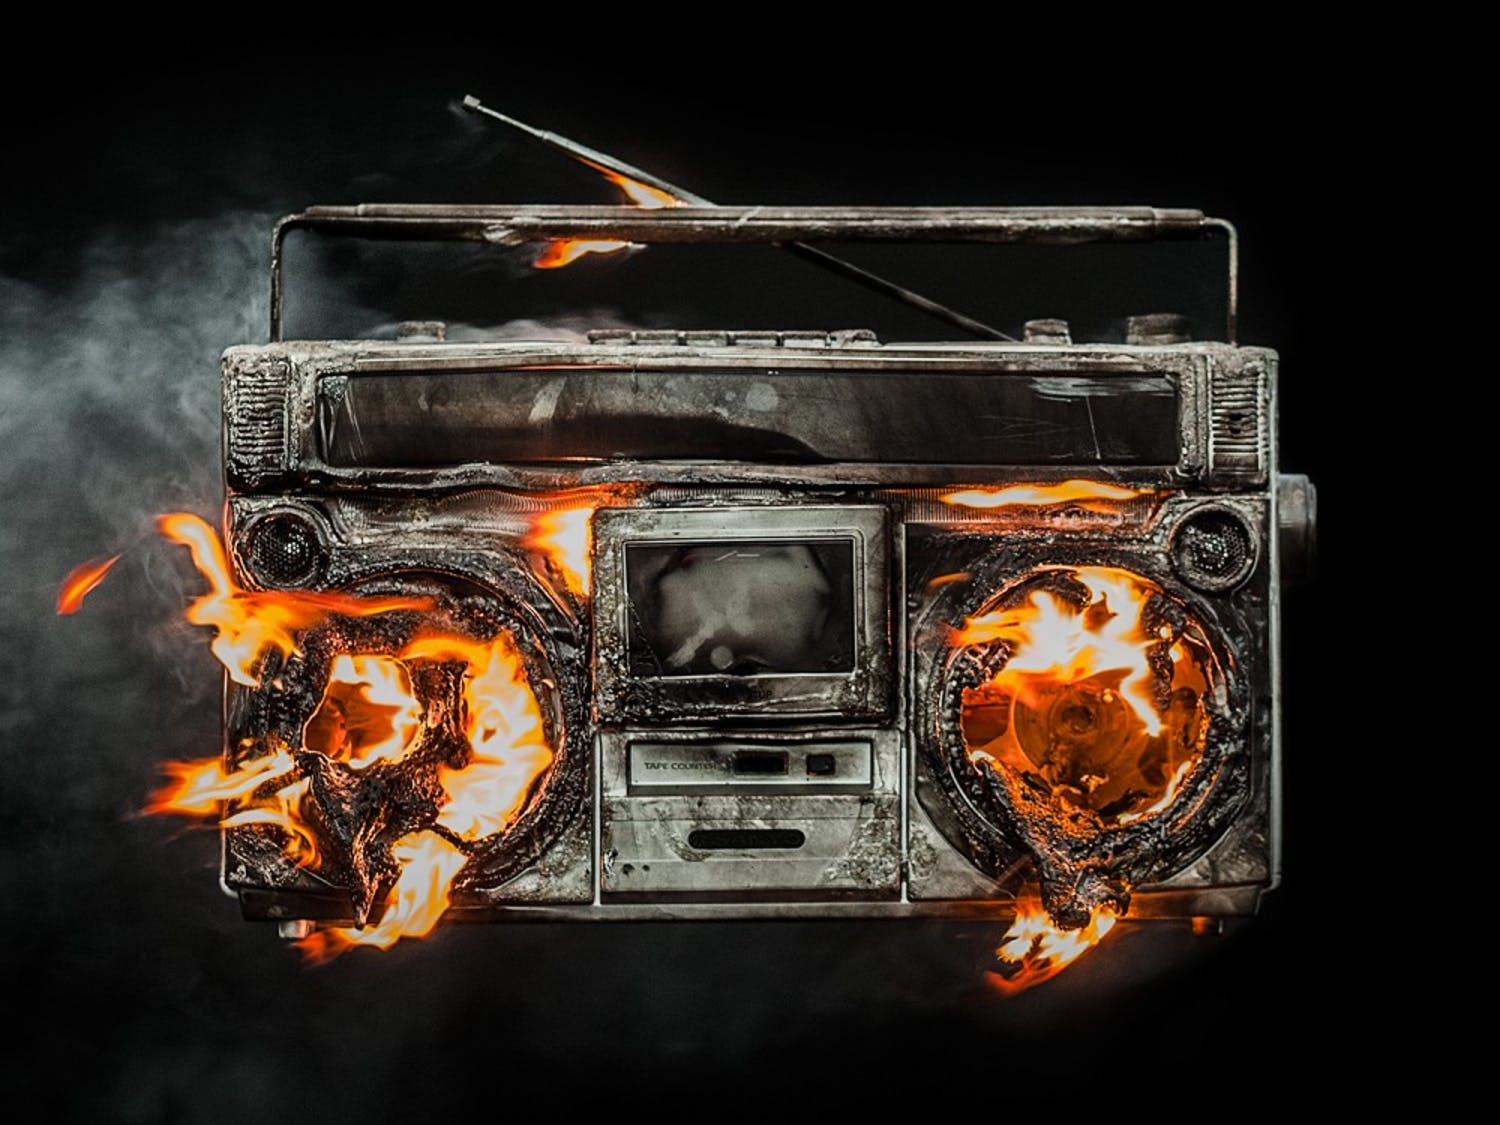 """Green Day's newest album, """"Revolution Radio"""" discusses disheartening themes like death, suicide and the misery of life."""